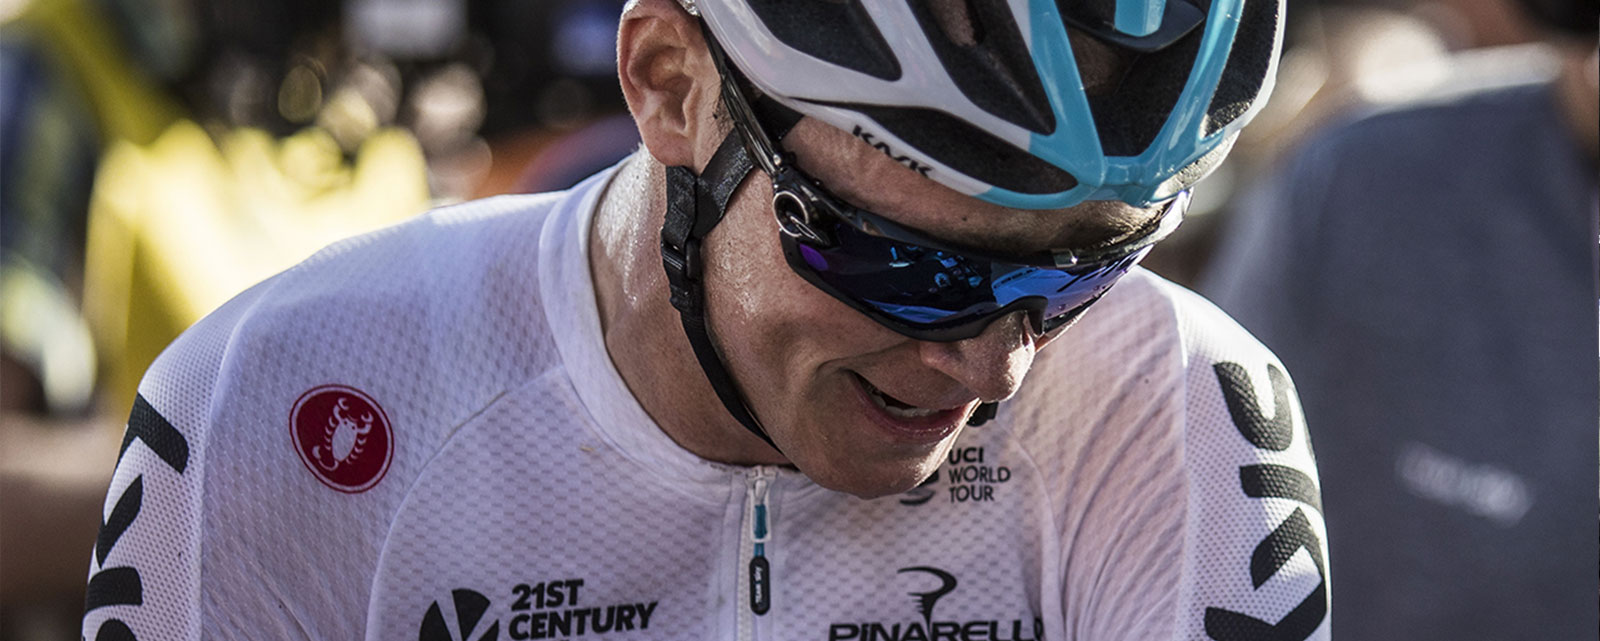 questions with Chris Froome